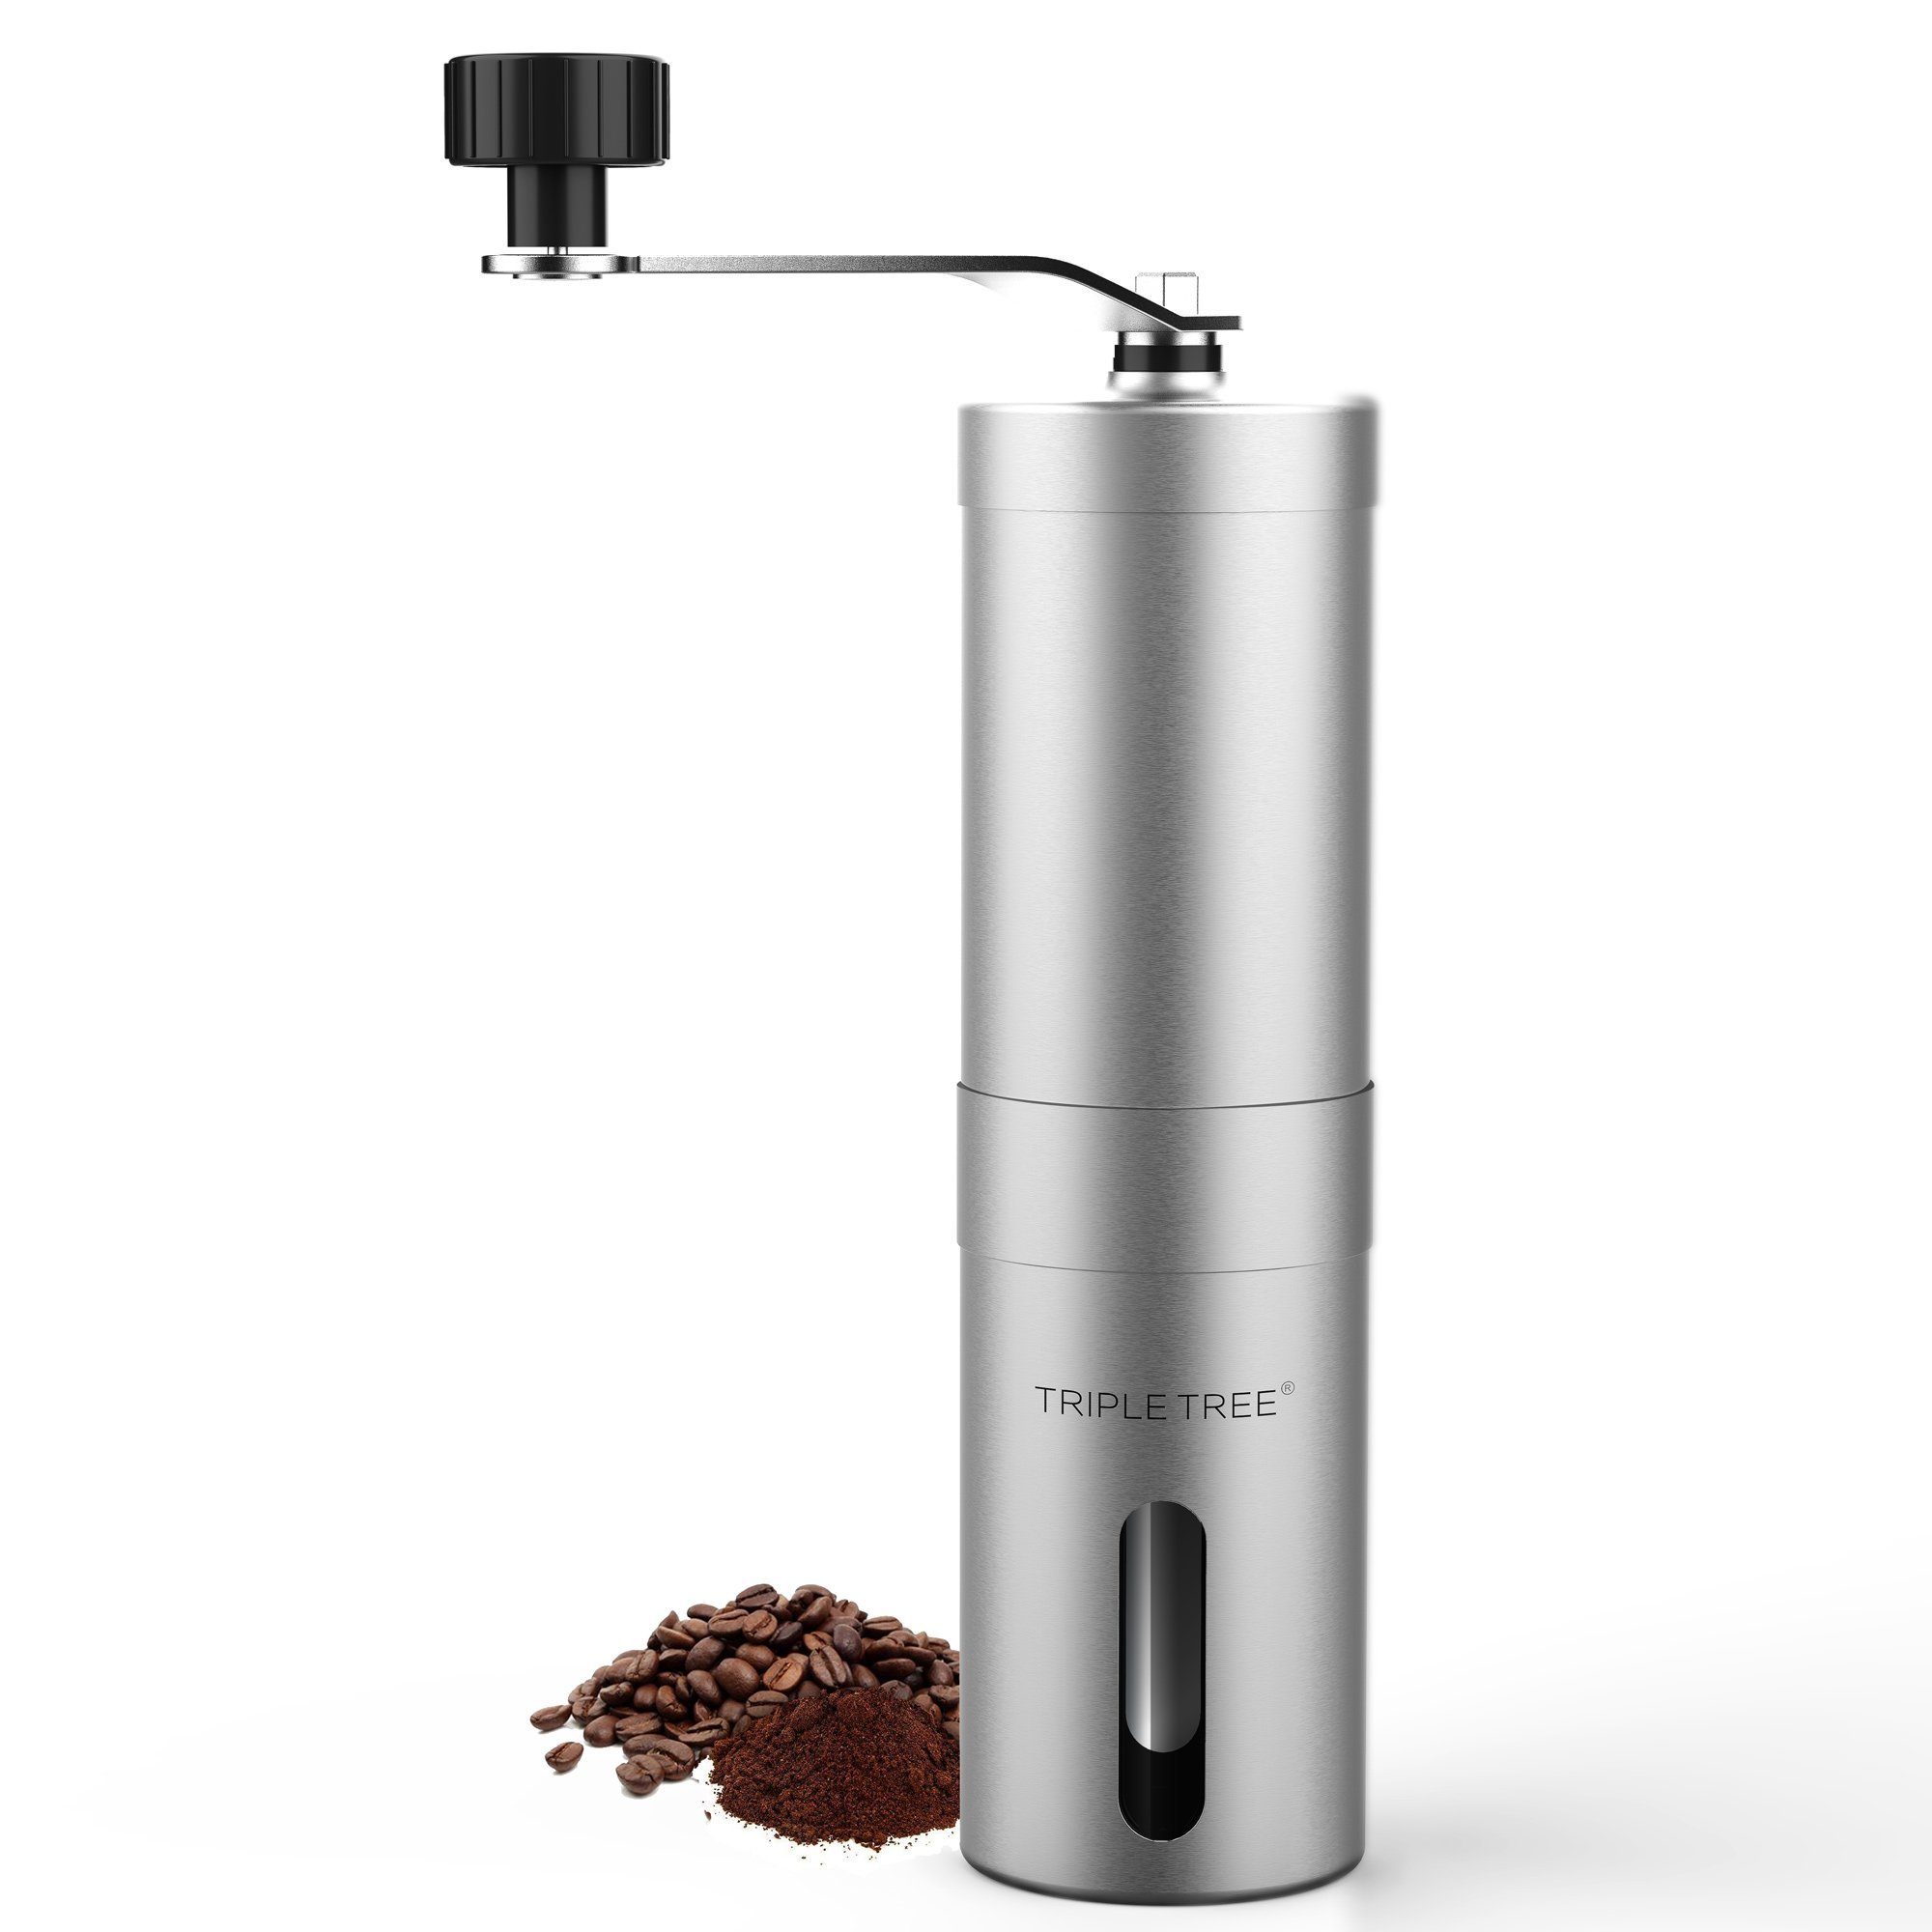 Portable Manual Coffee Grinder, Hand Coffee Bean Mill With Ceramic Burr, Stainless Shell, Removable handle, 0.4 Cup Container